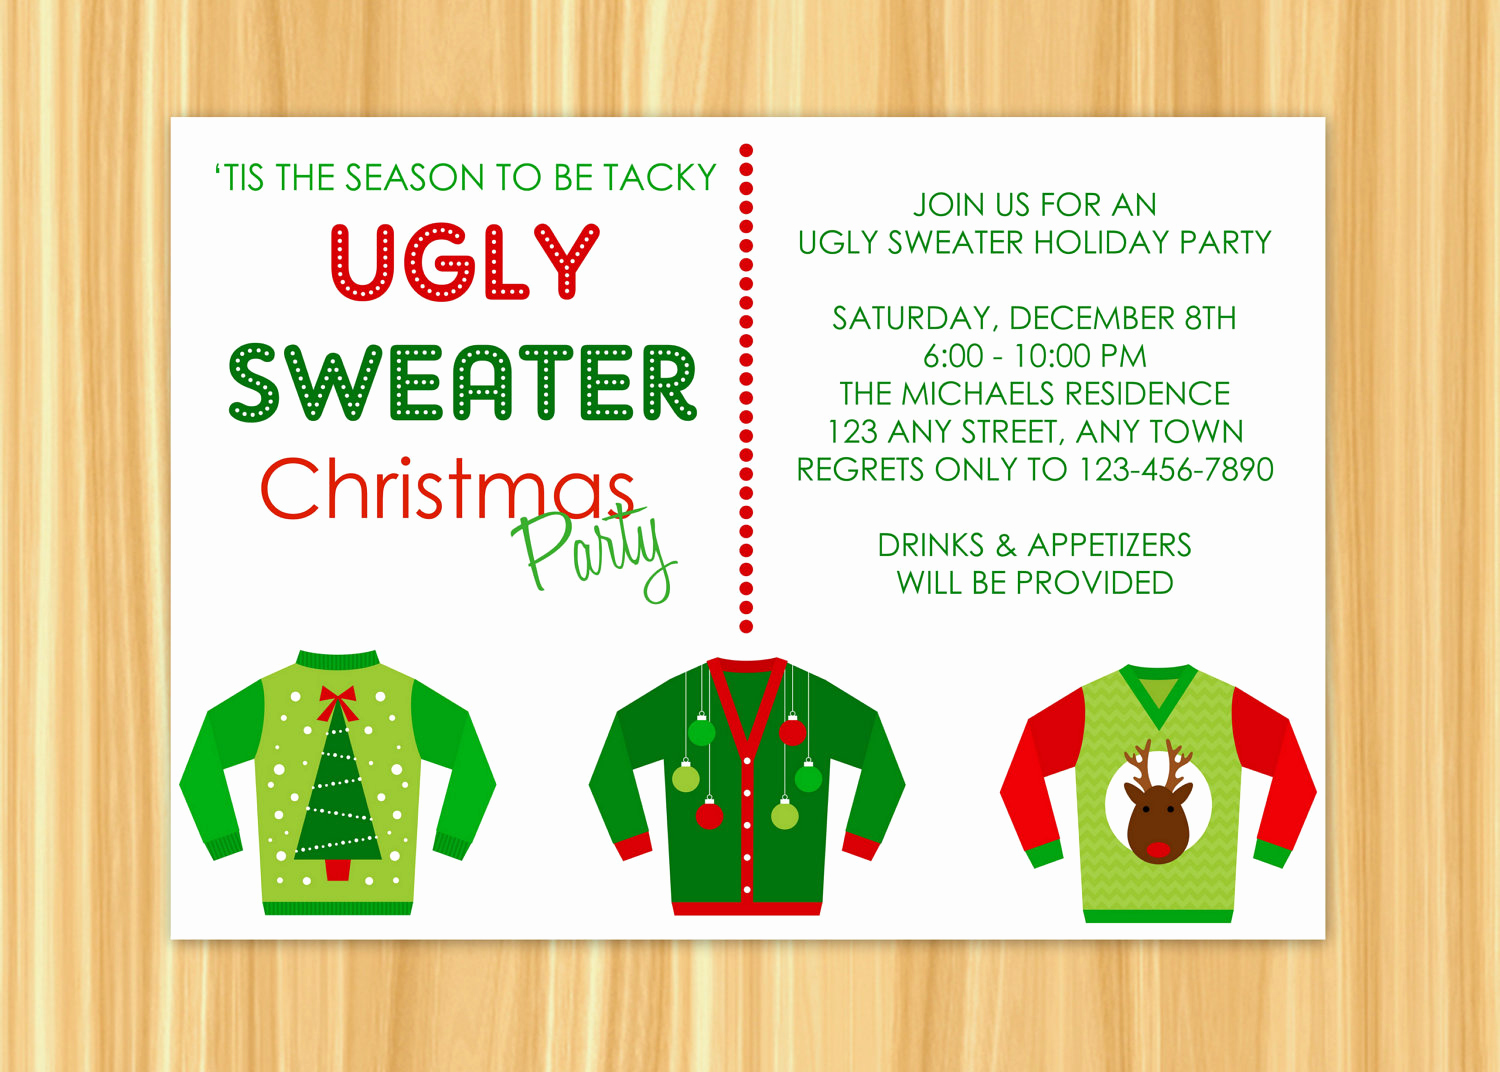 Ugly Sweater Christmas Party Invitation Unique Ugly Sweater Invitation Ugly Sweater Holiday Party